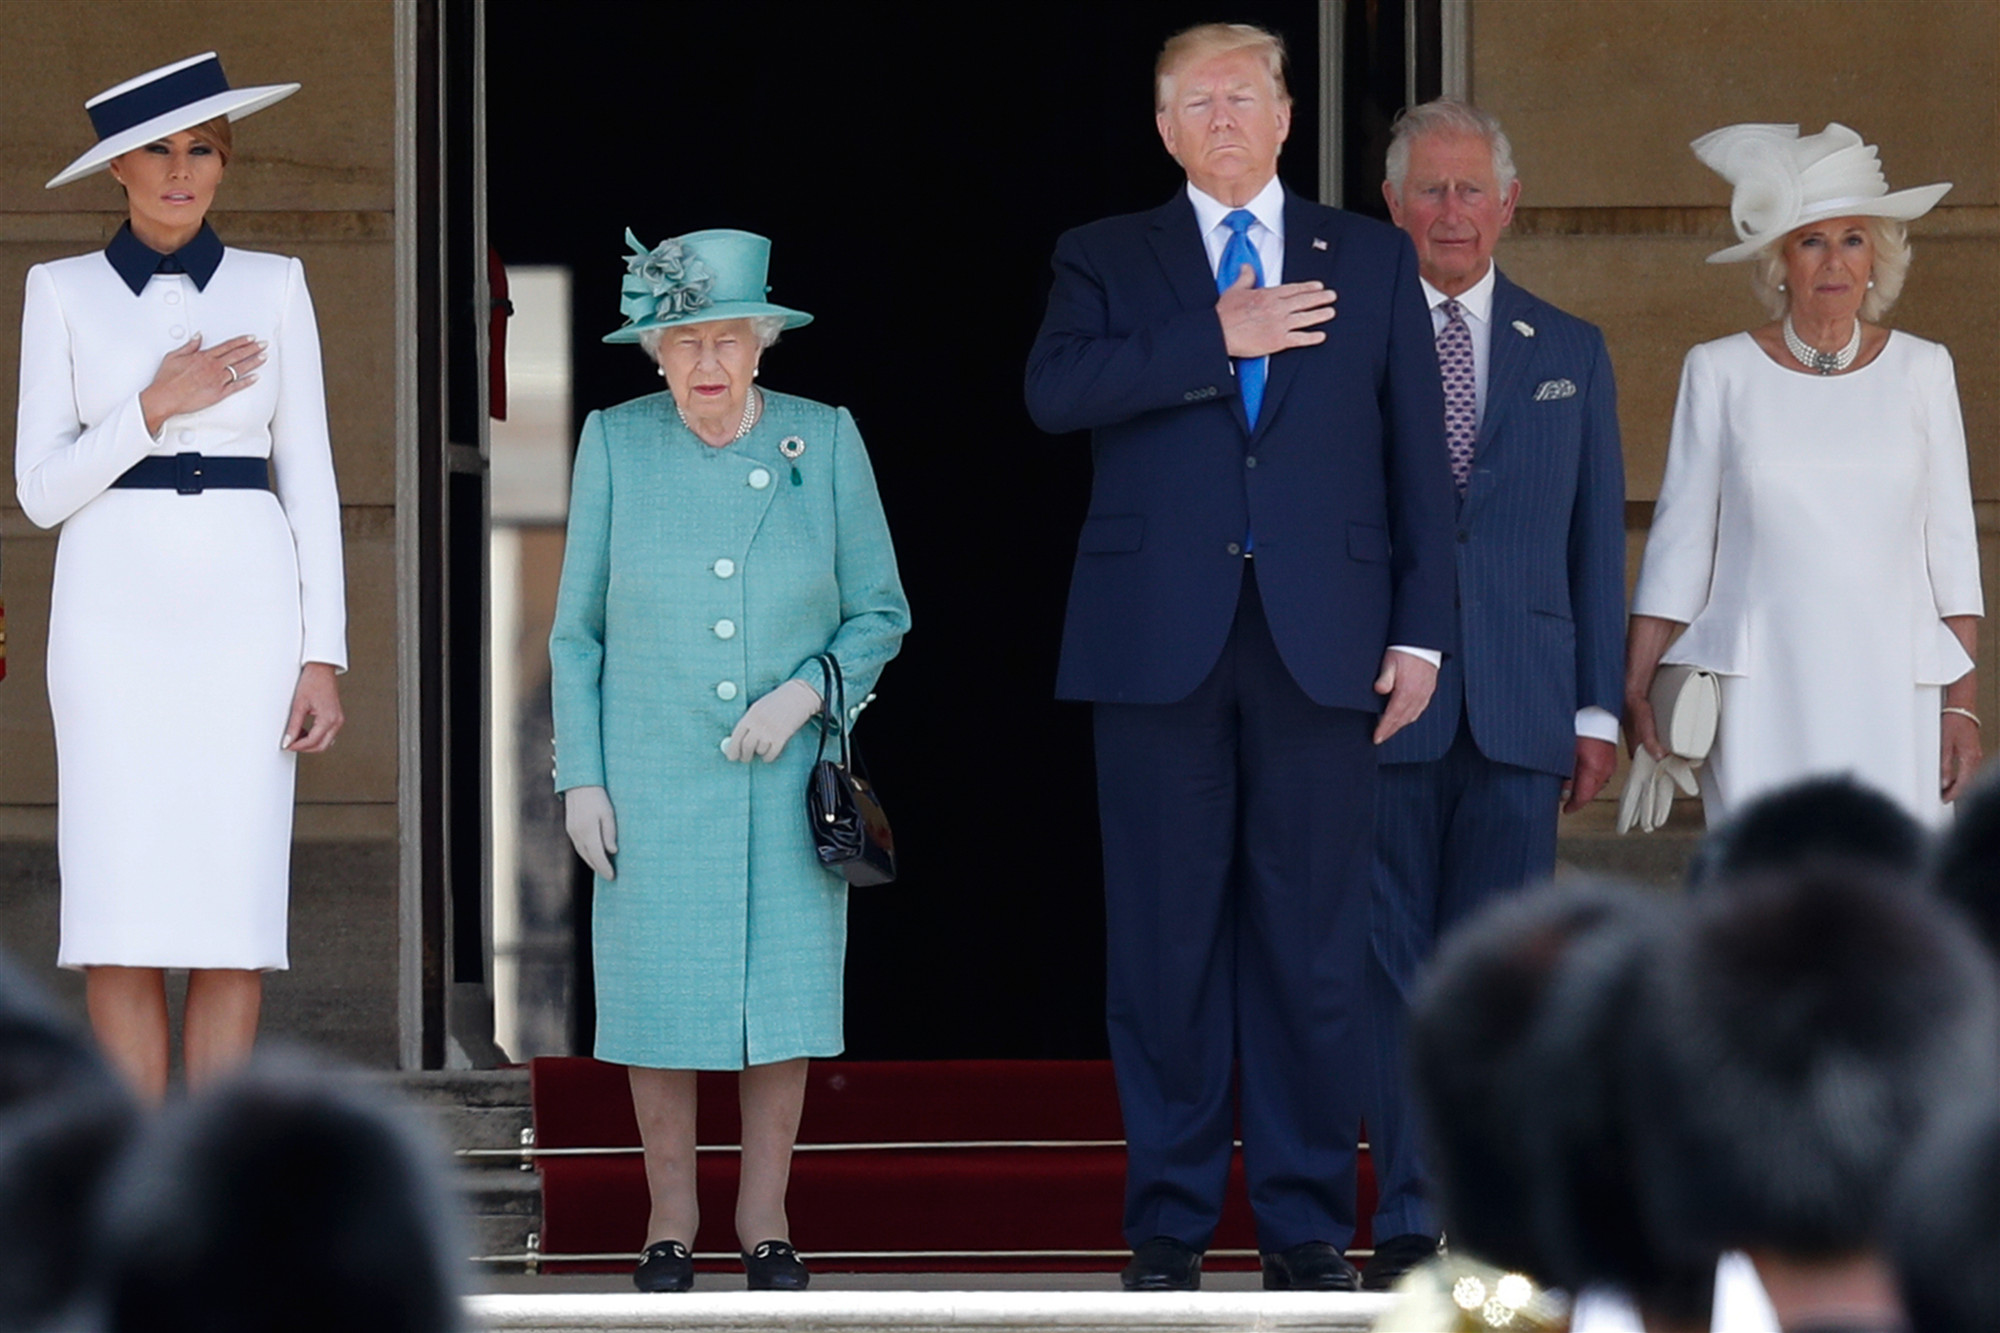 US president in UK for state visit as protests planned